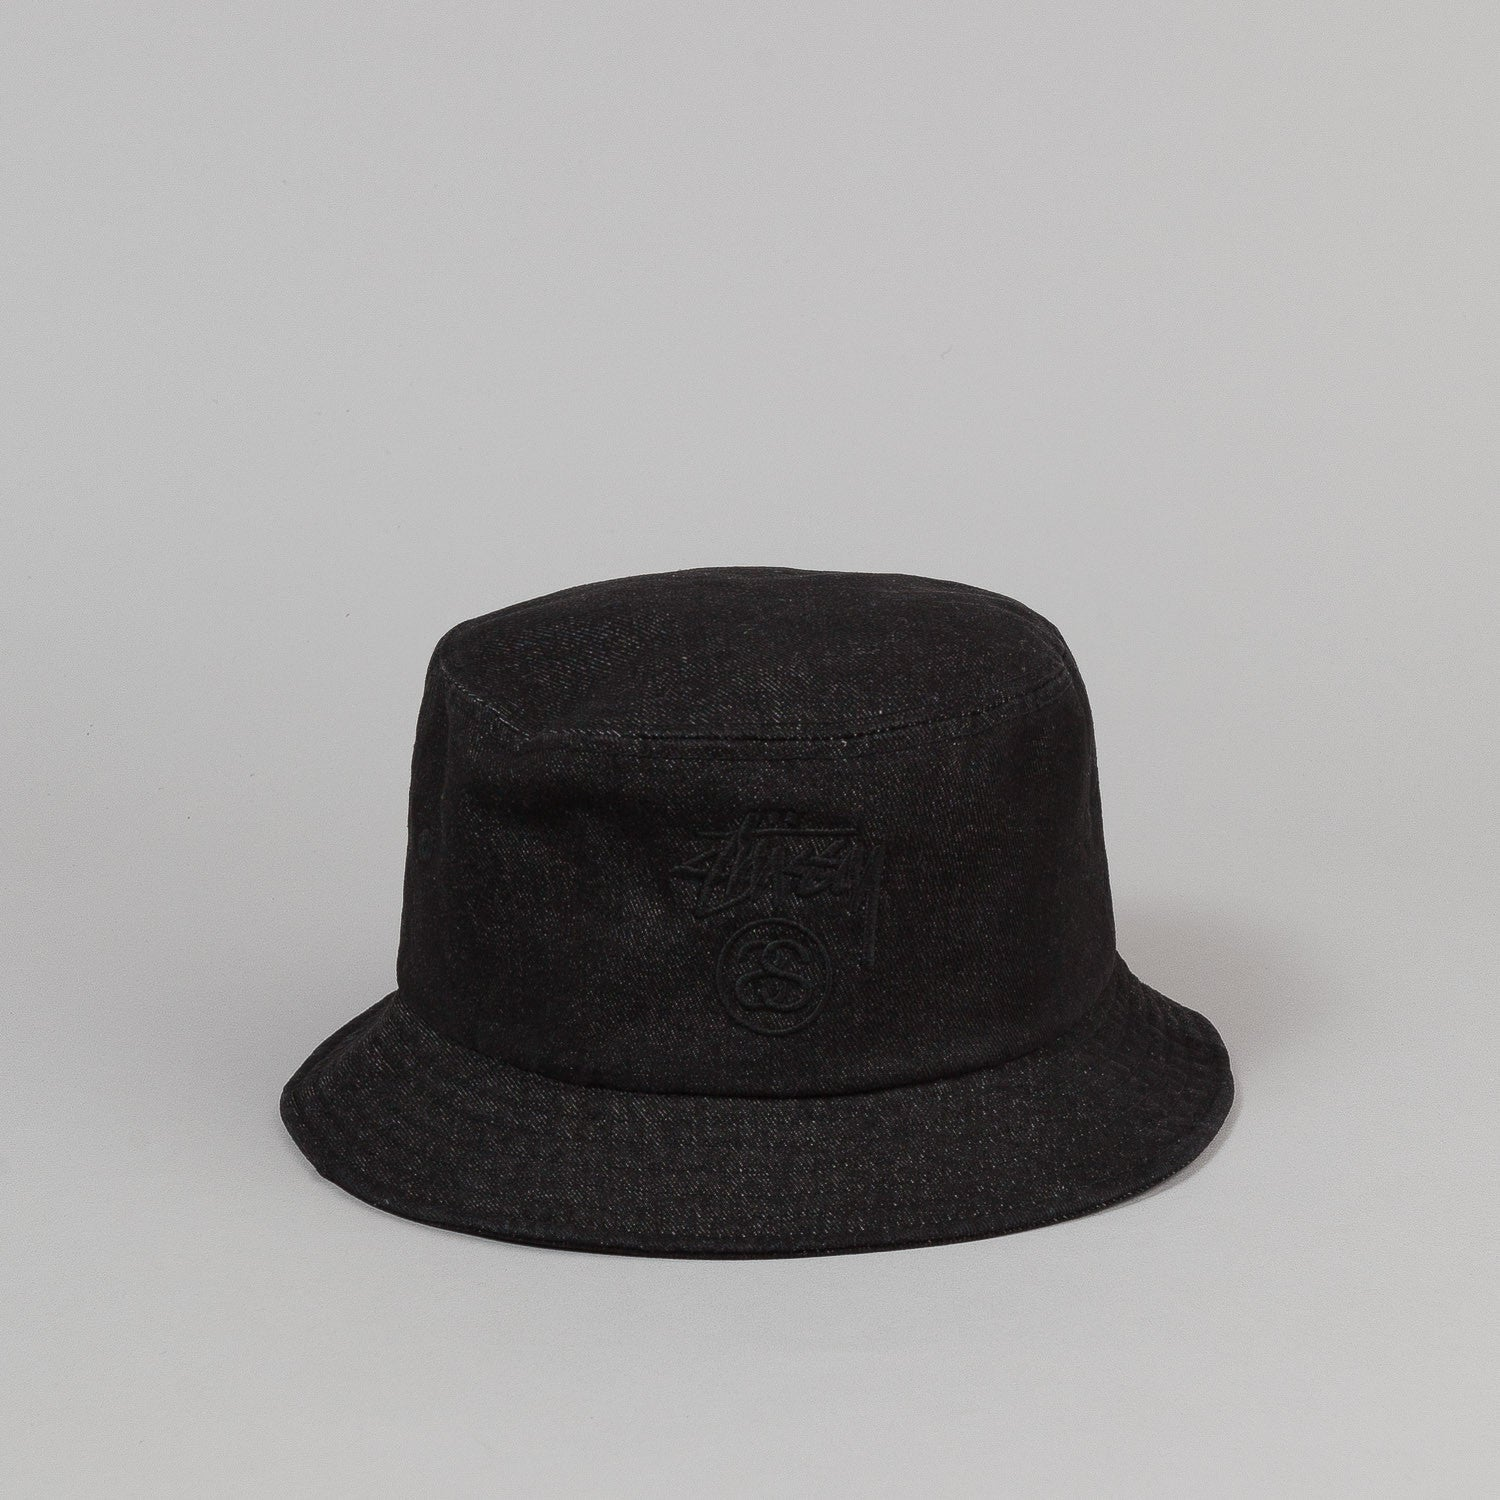 Stussy Stock Lock Denim Bucket Hat - Black